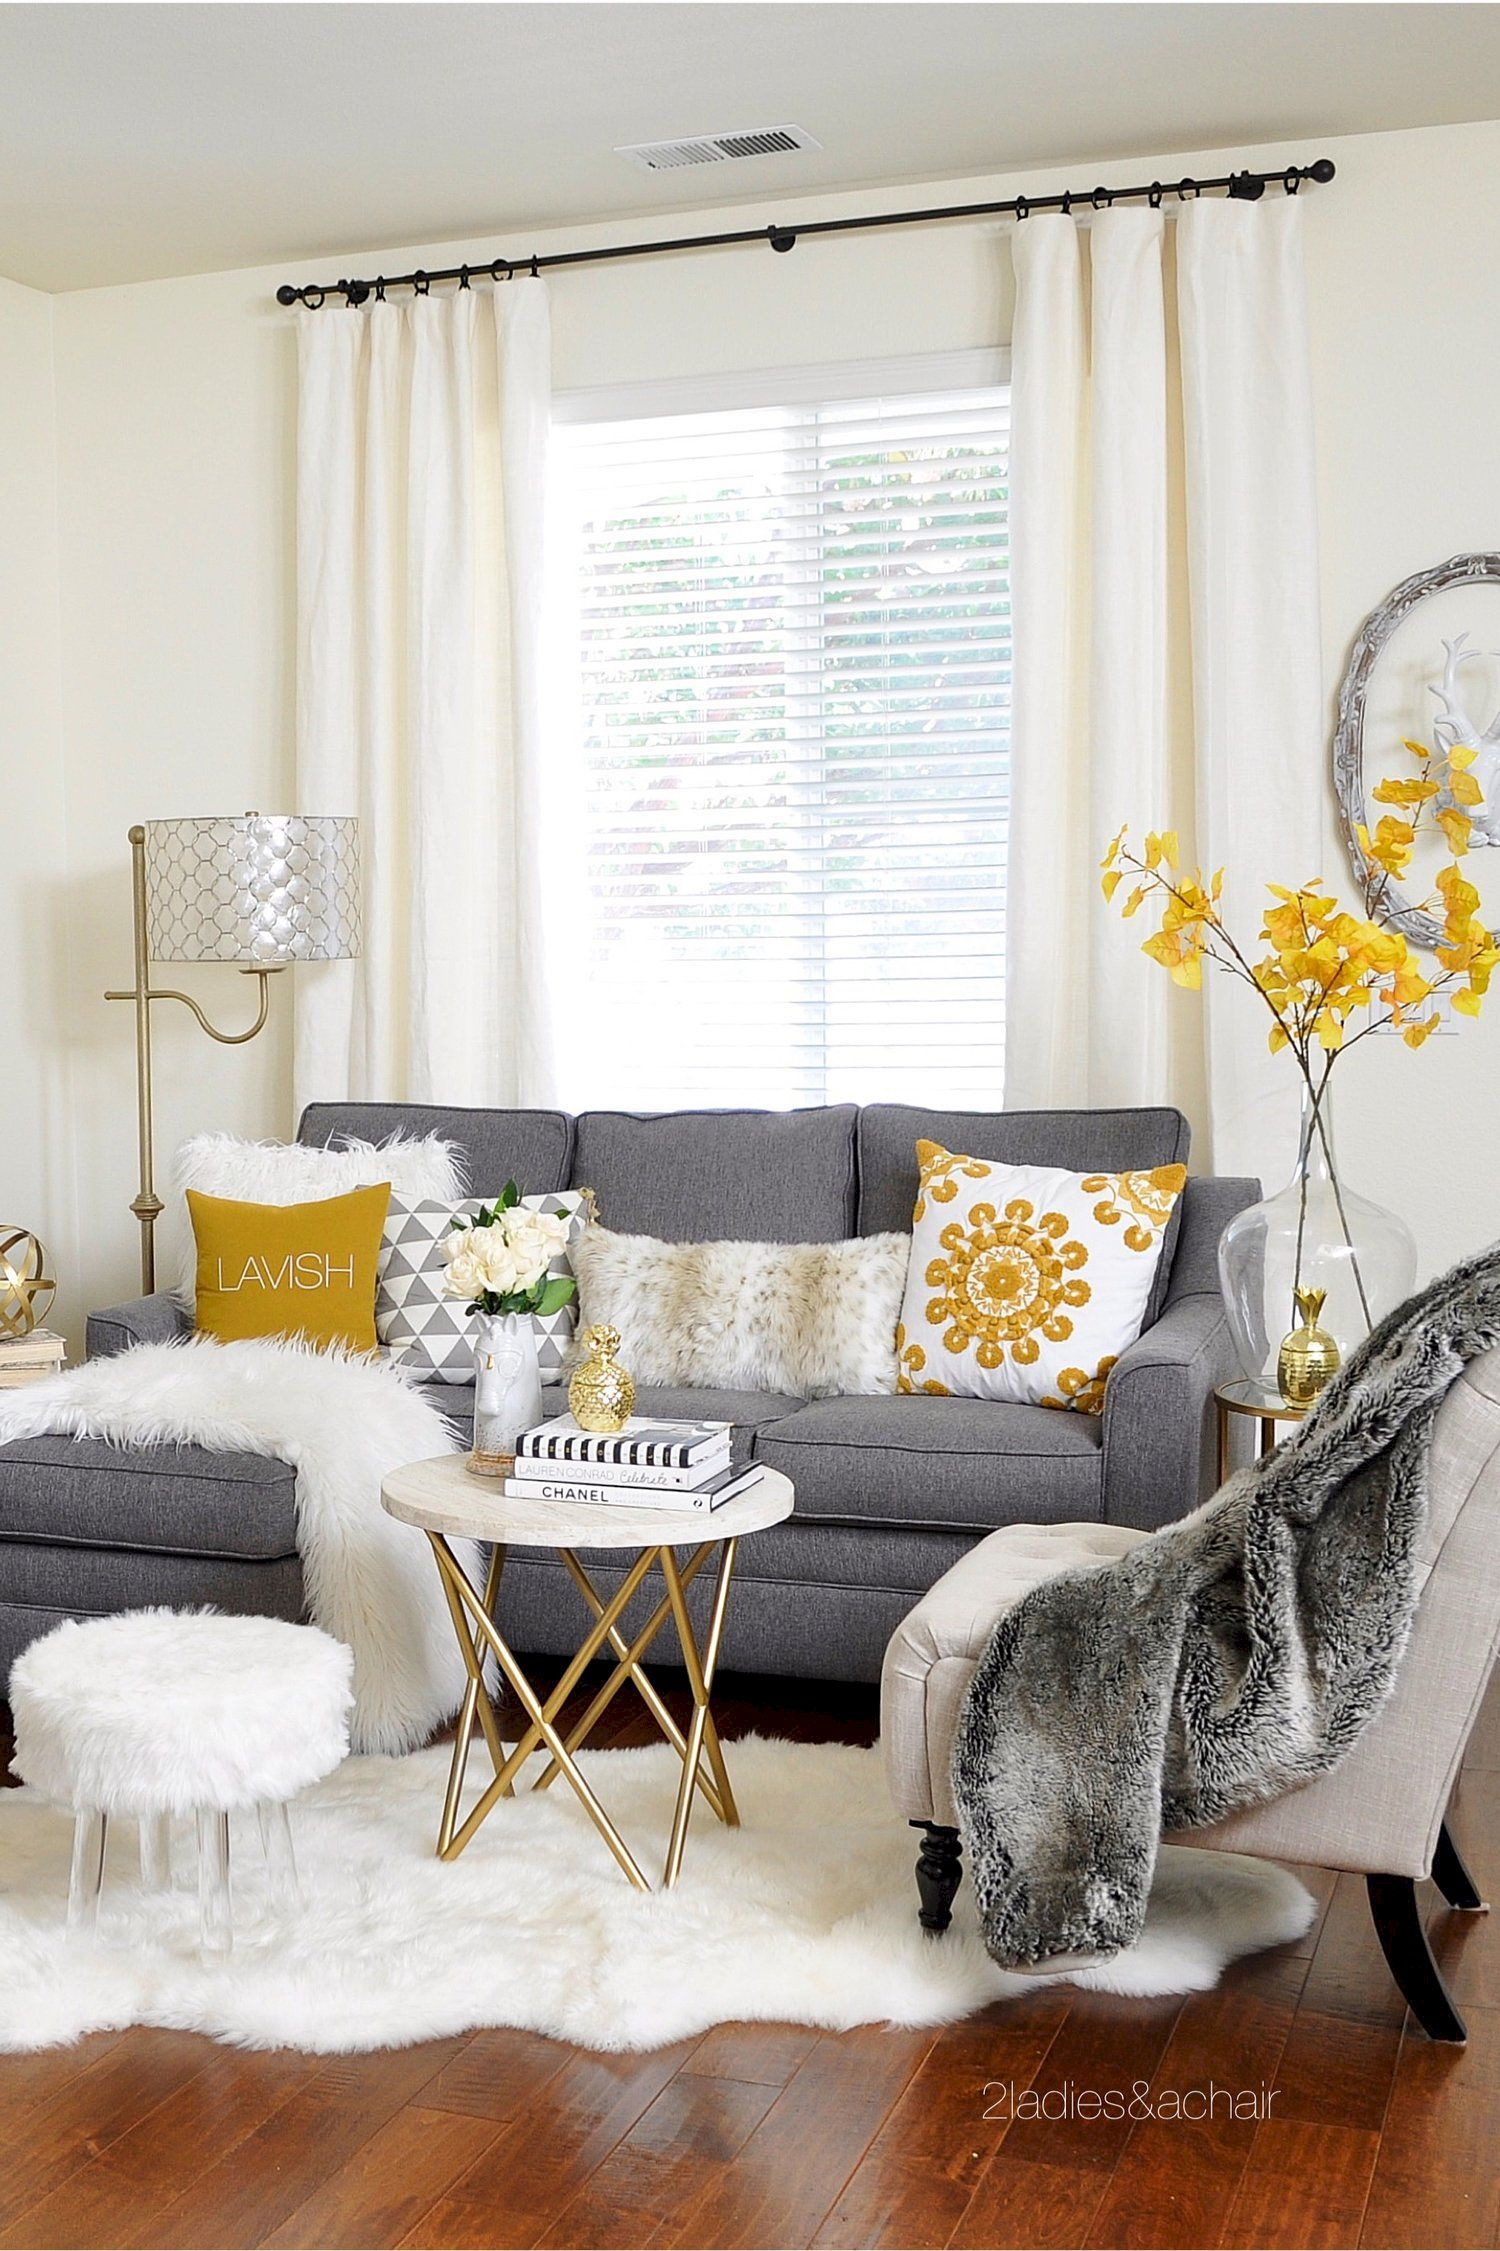 173  Best DIY Small Living Room Ideas On a Budget https   freshoom     173  Best DIY Small Living Room Ideas On a Budget  https   freshoom com 4827 173 best diy small living room ideas budget